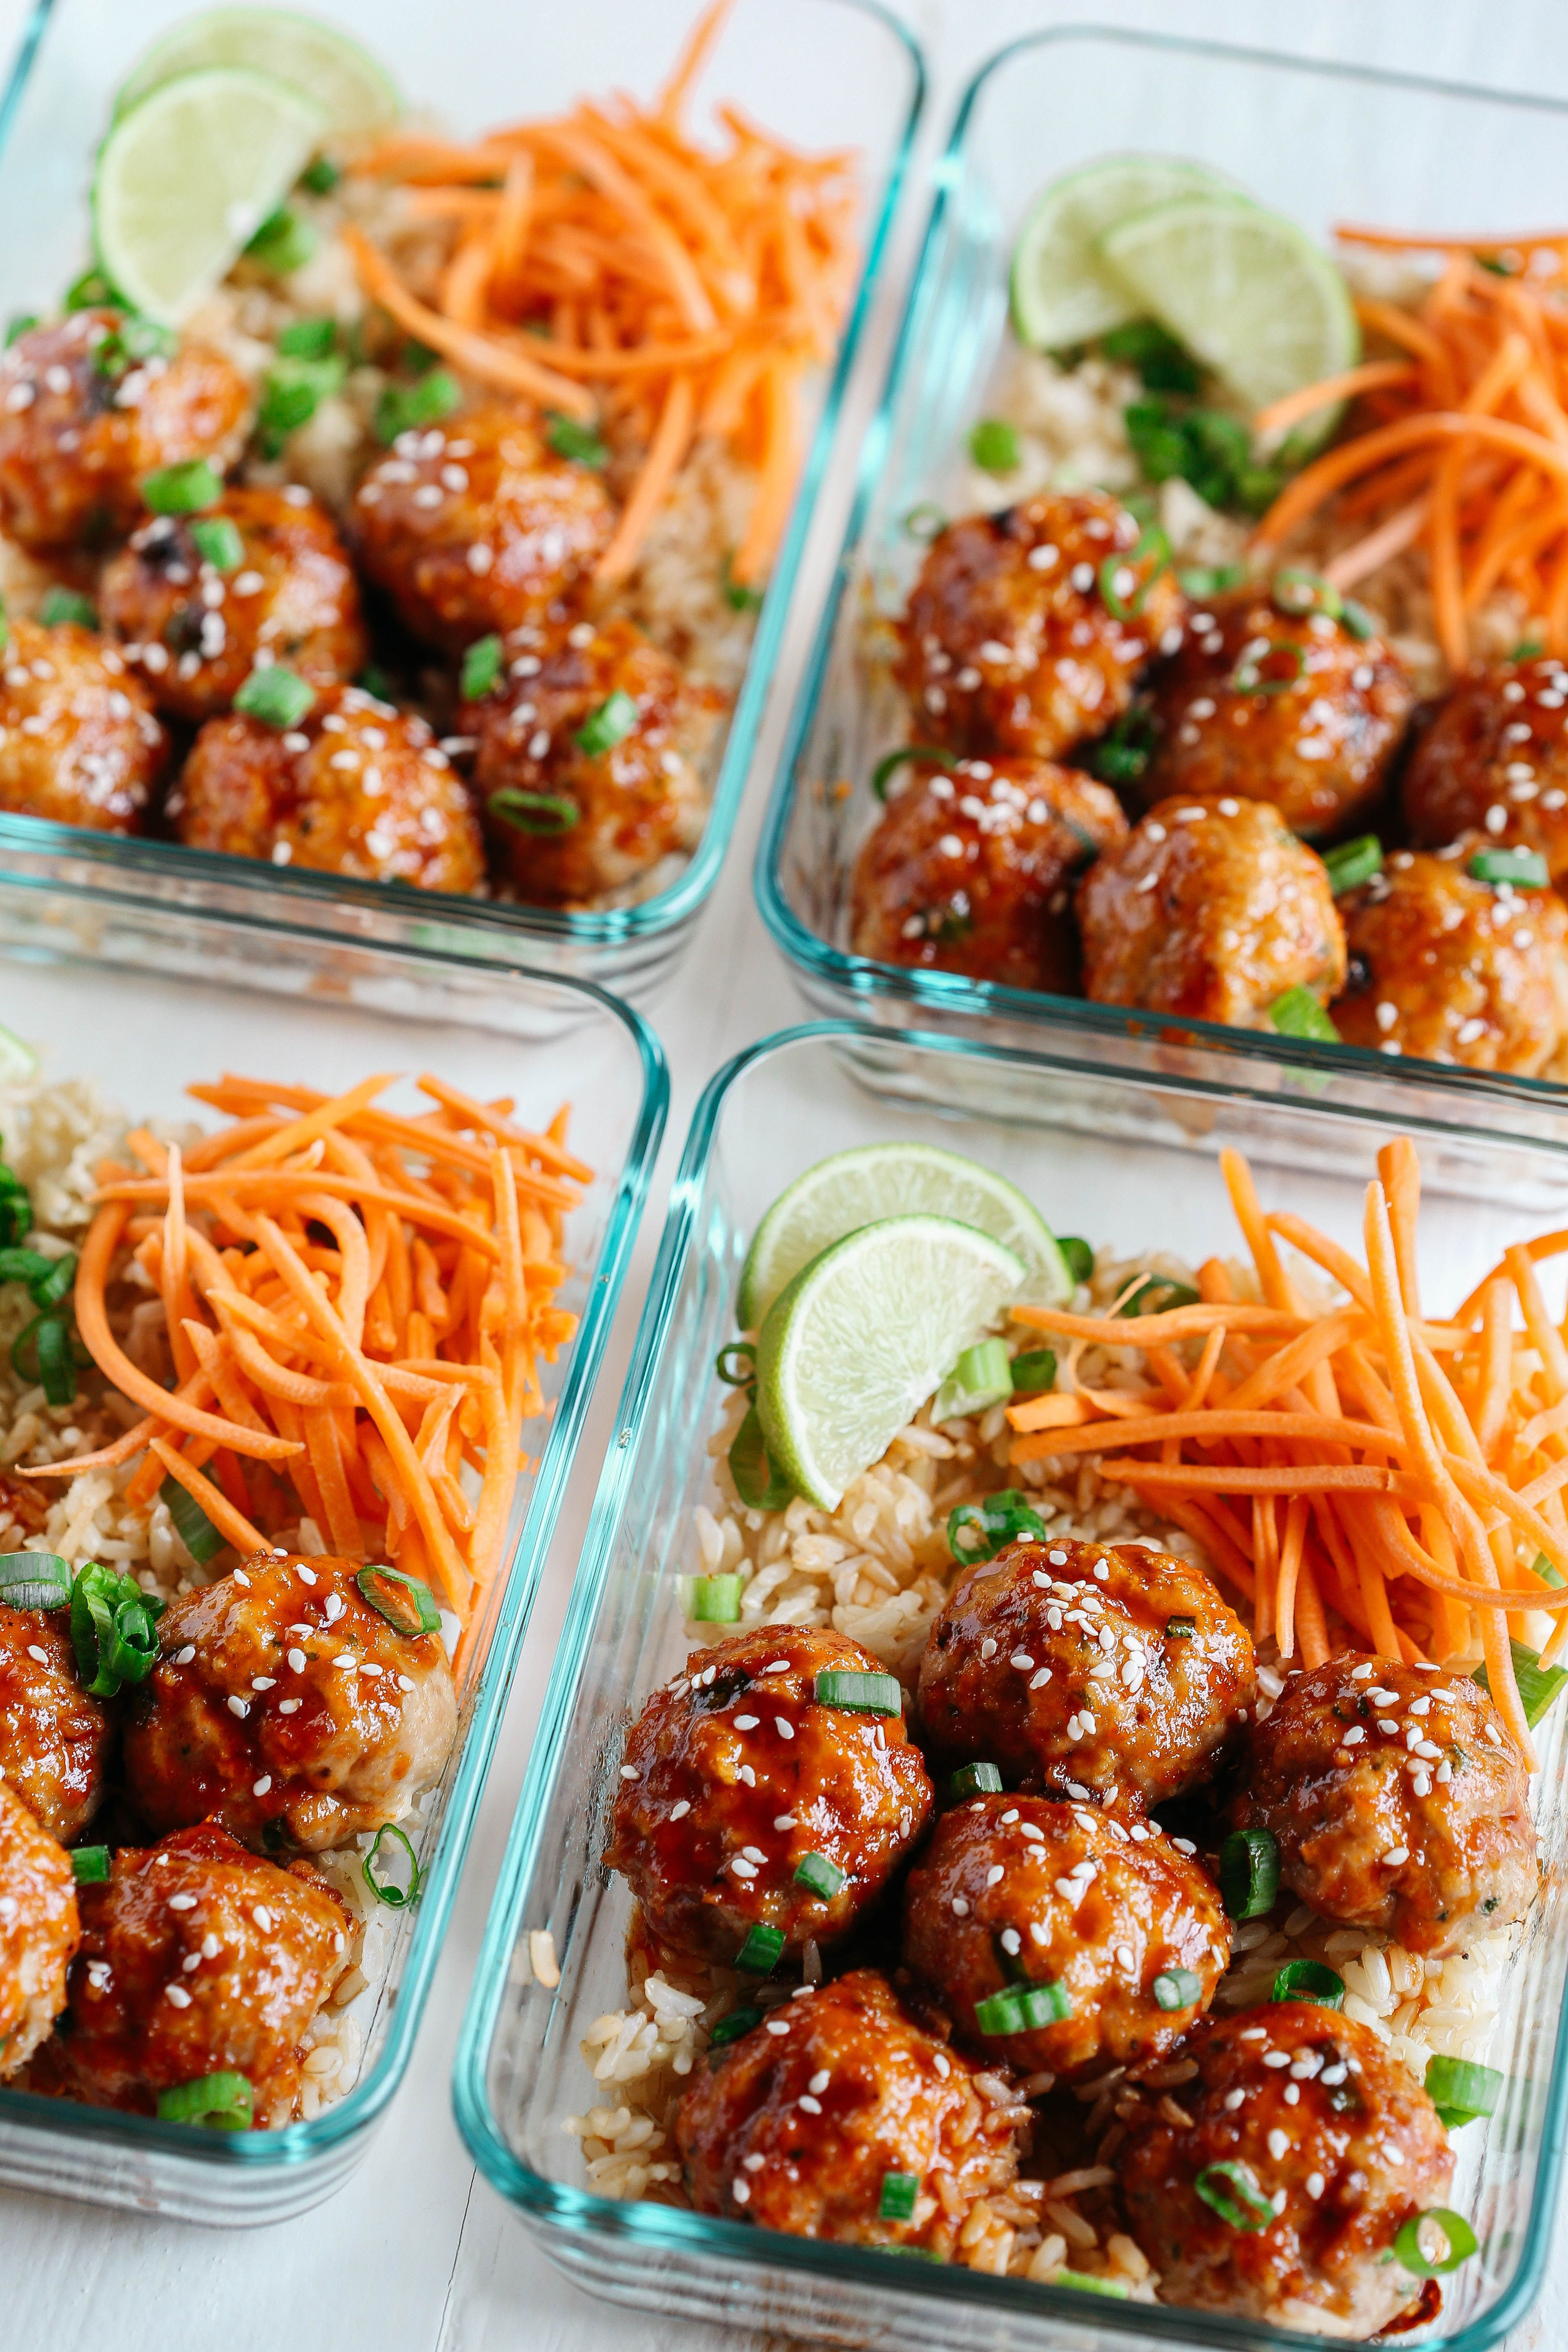 These Honey Sriracha Glazed Meatballs are sweet, spicy and full of so much flavor! They also take less than 30 minutes to make and are perfect for weekly meal prep! #healthylunches